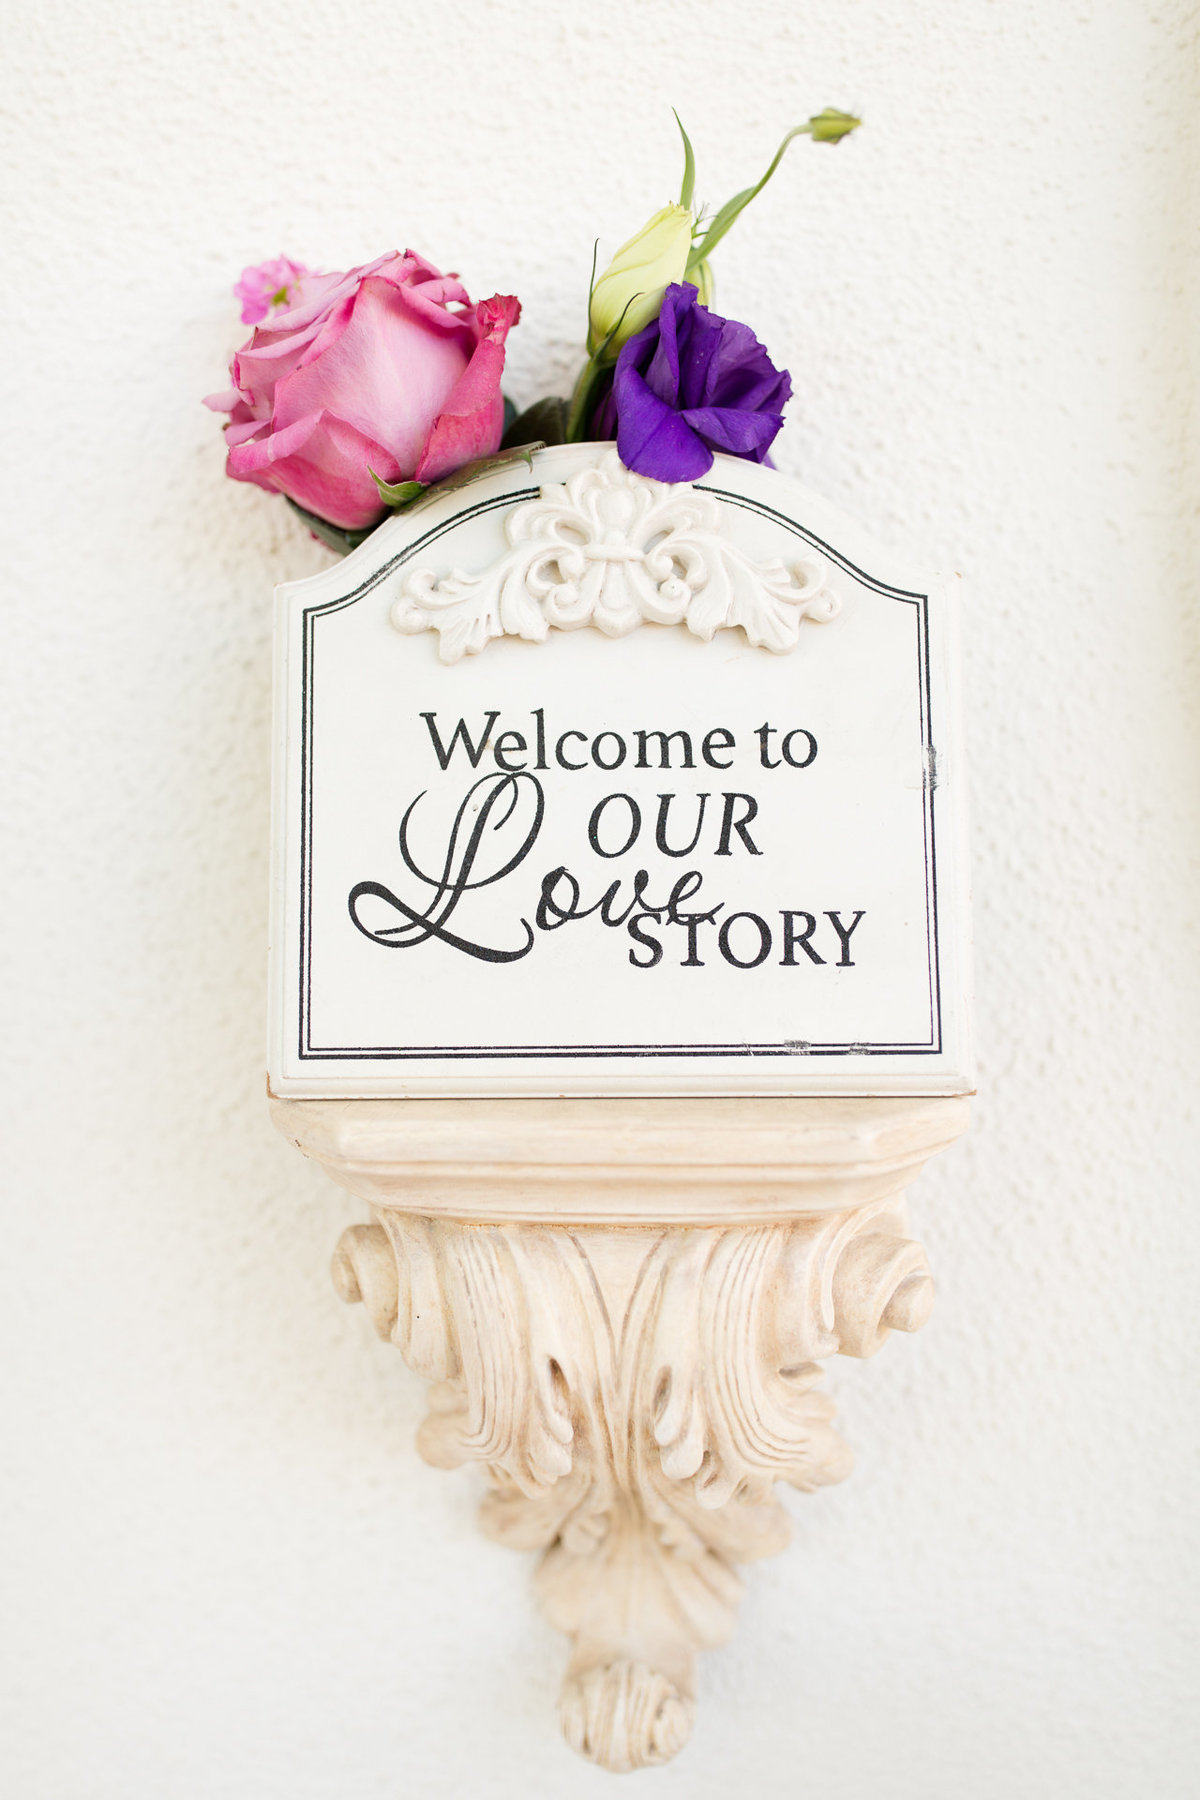 Welcome to our love story sign with pink and purple flowers at villa de amore by matty fran photography